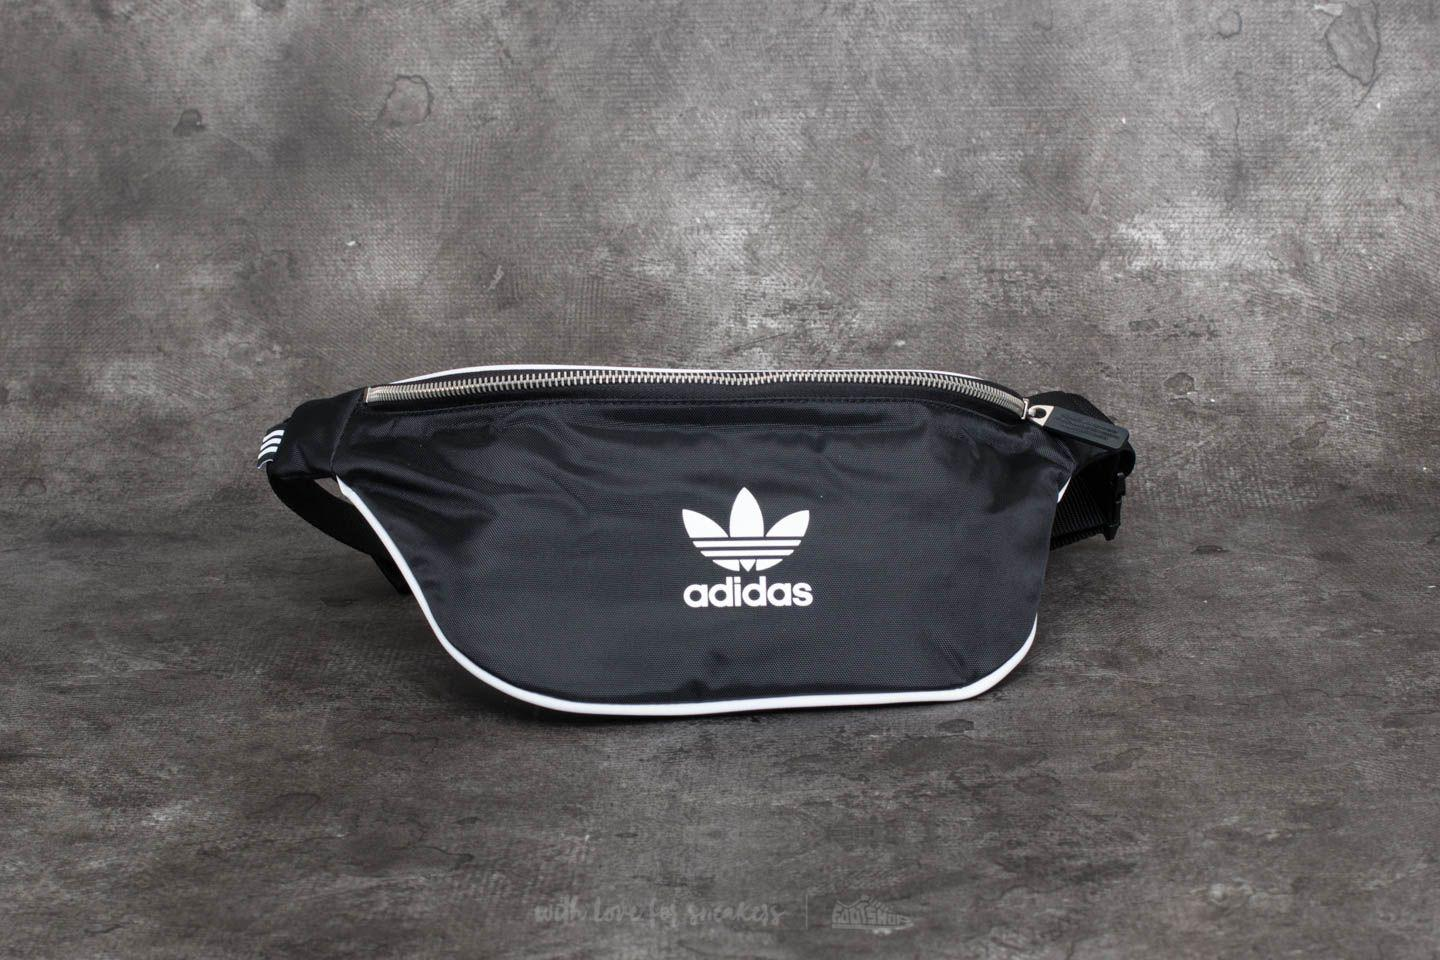 2d9b21c757b9 Lyst - adidas Originals Adidas Waist Bag Black in Black for Men